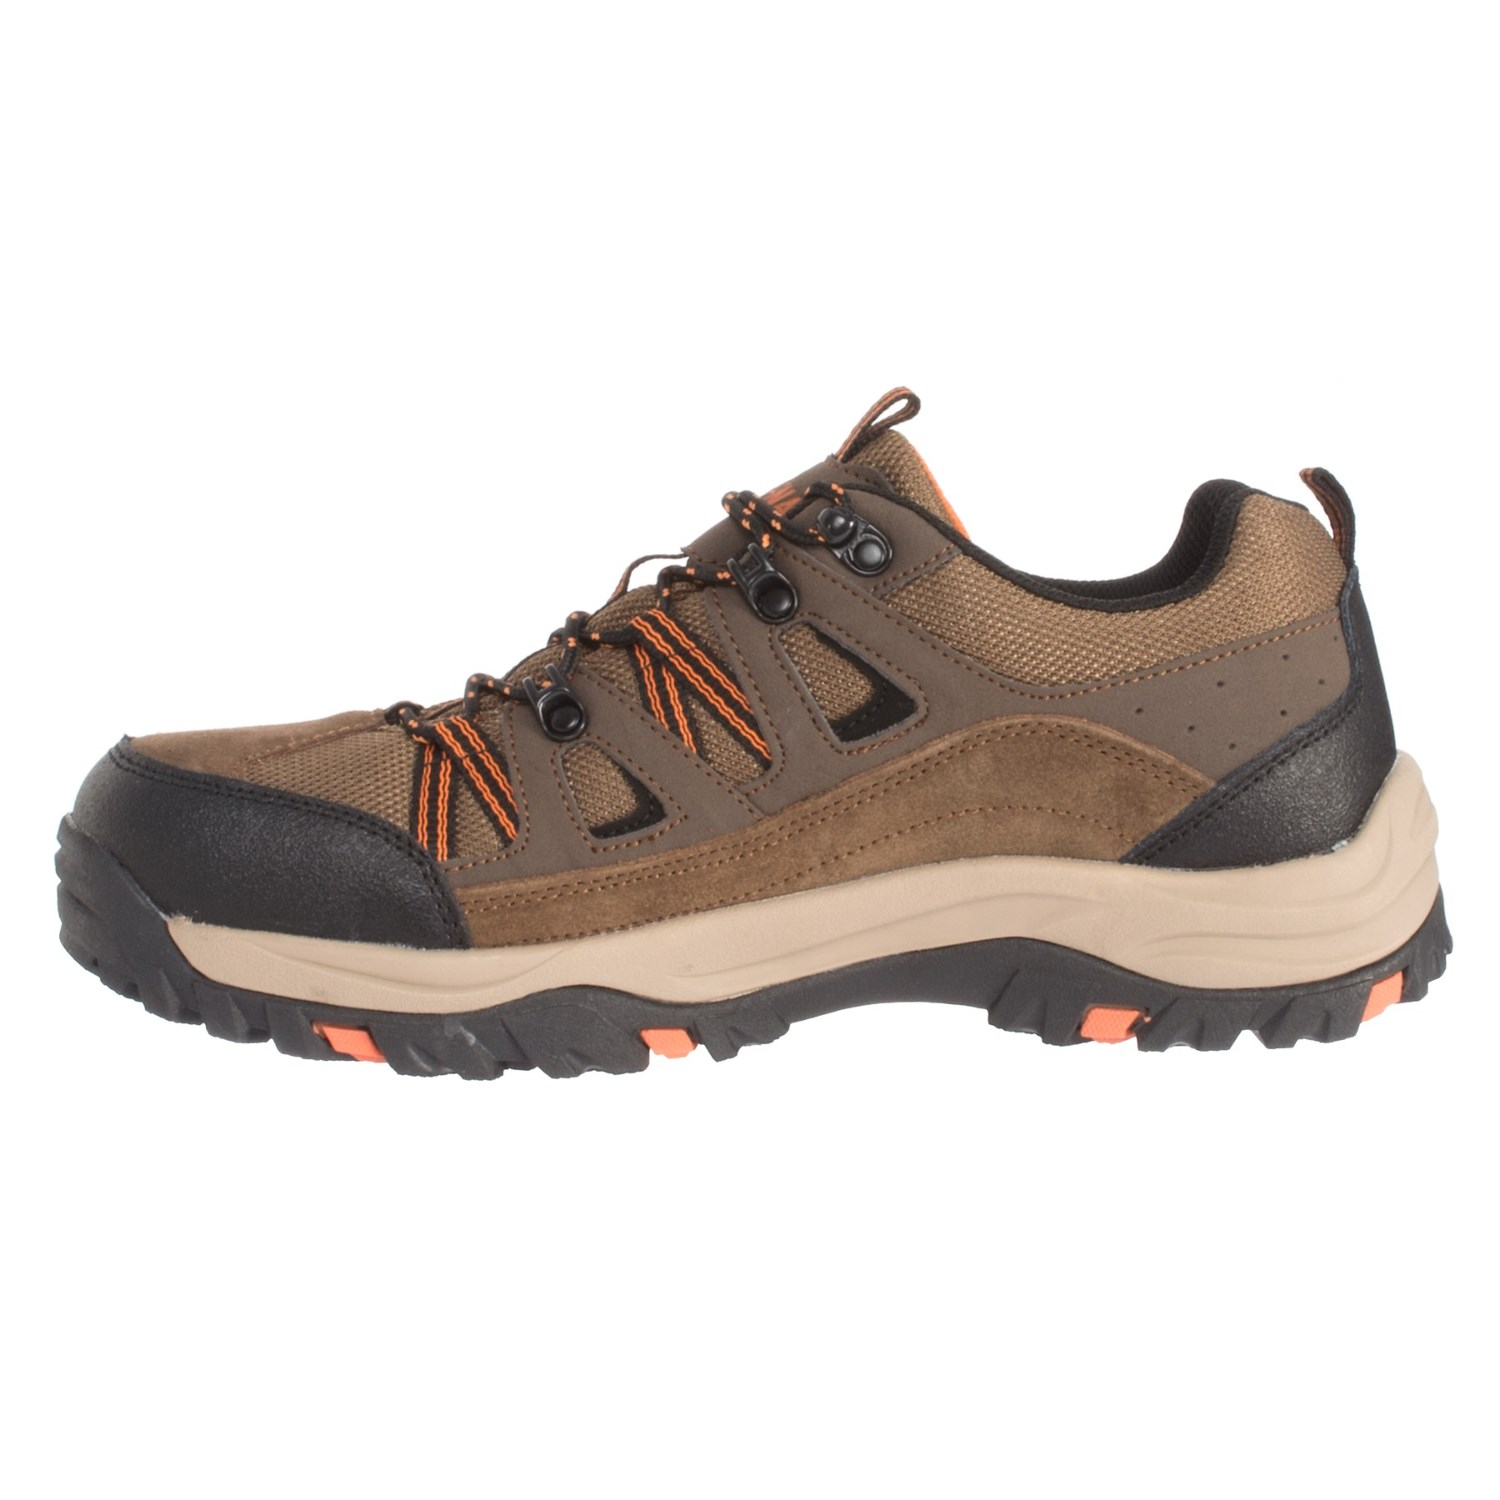 Denali Juniper Hiking Shoes For Men Save 46